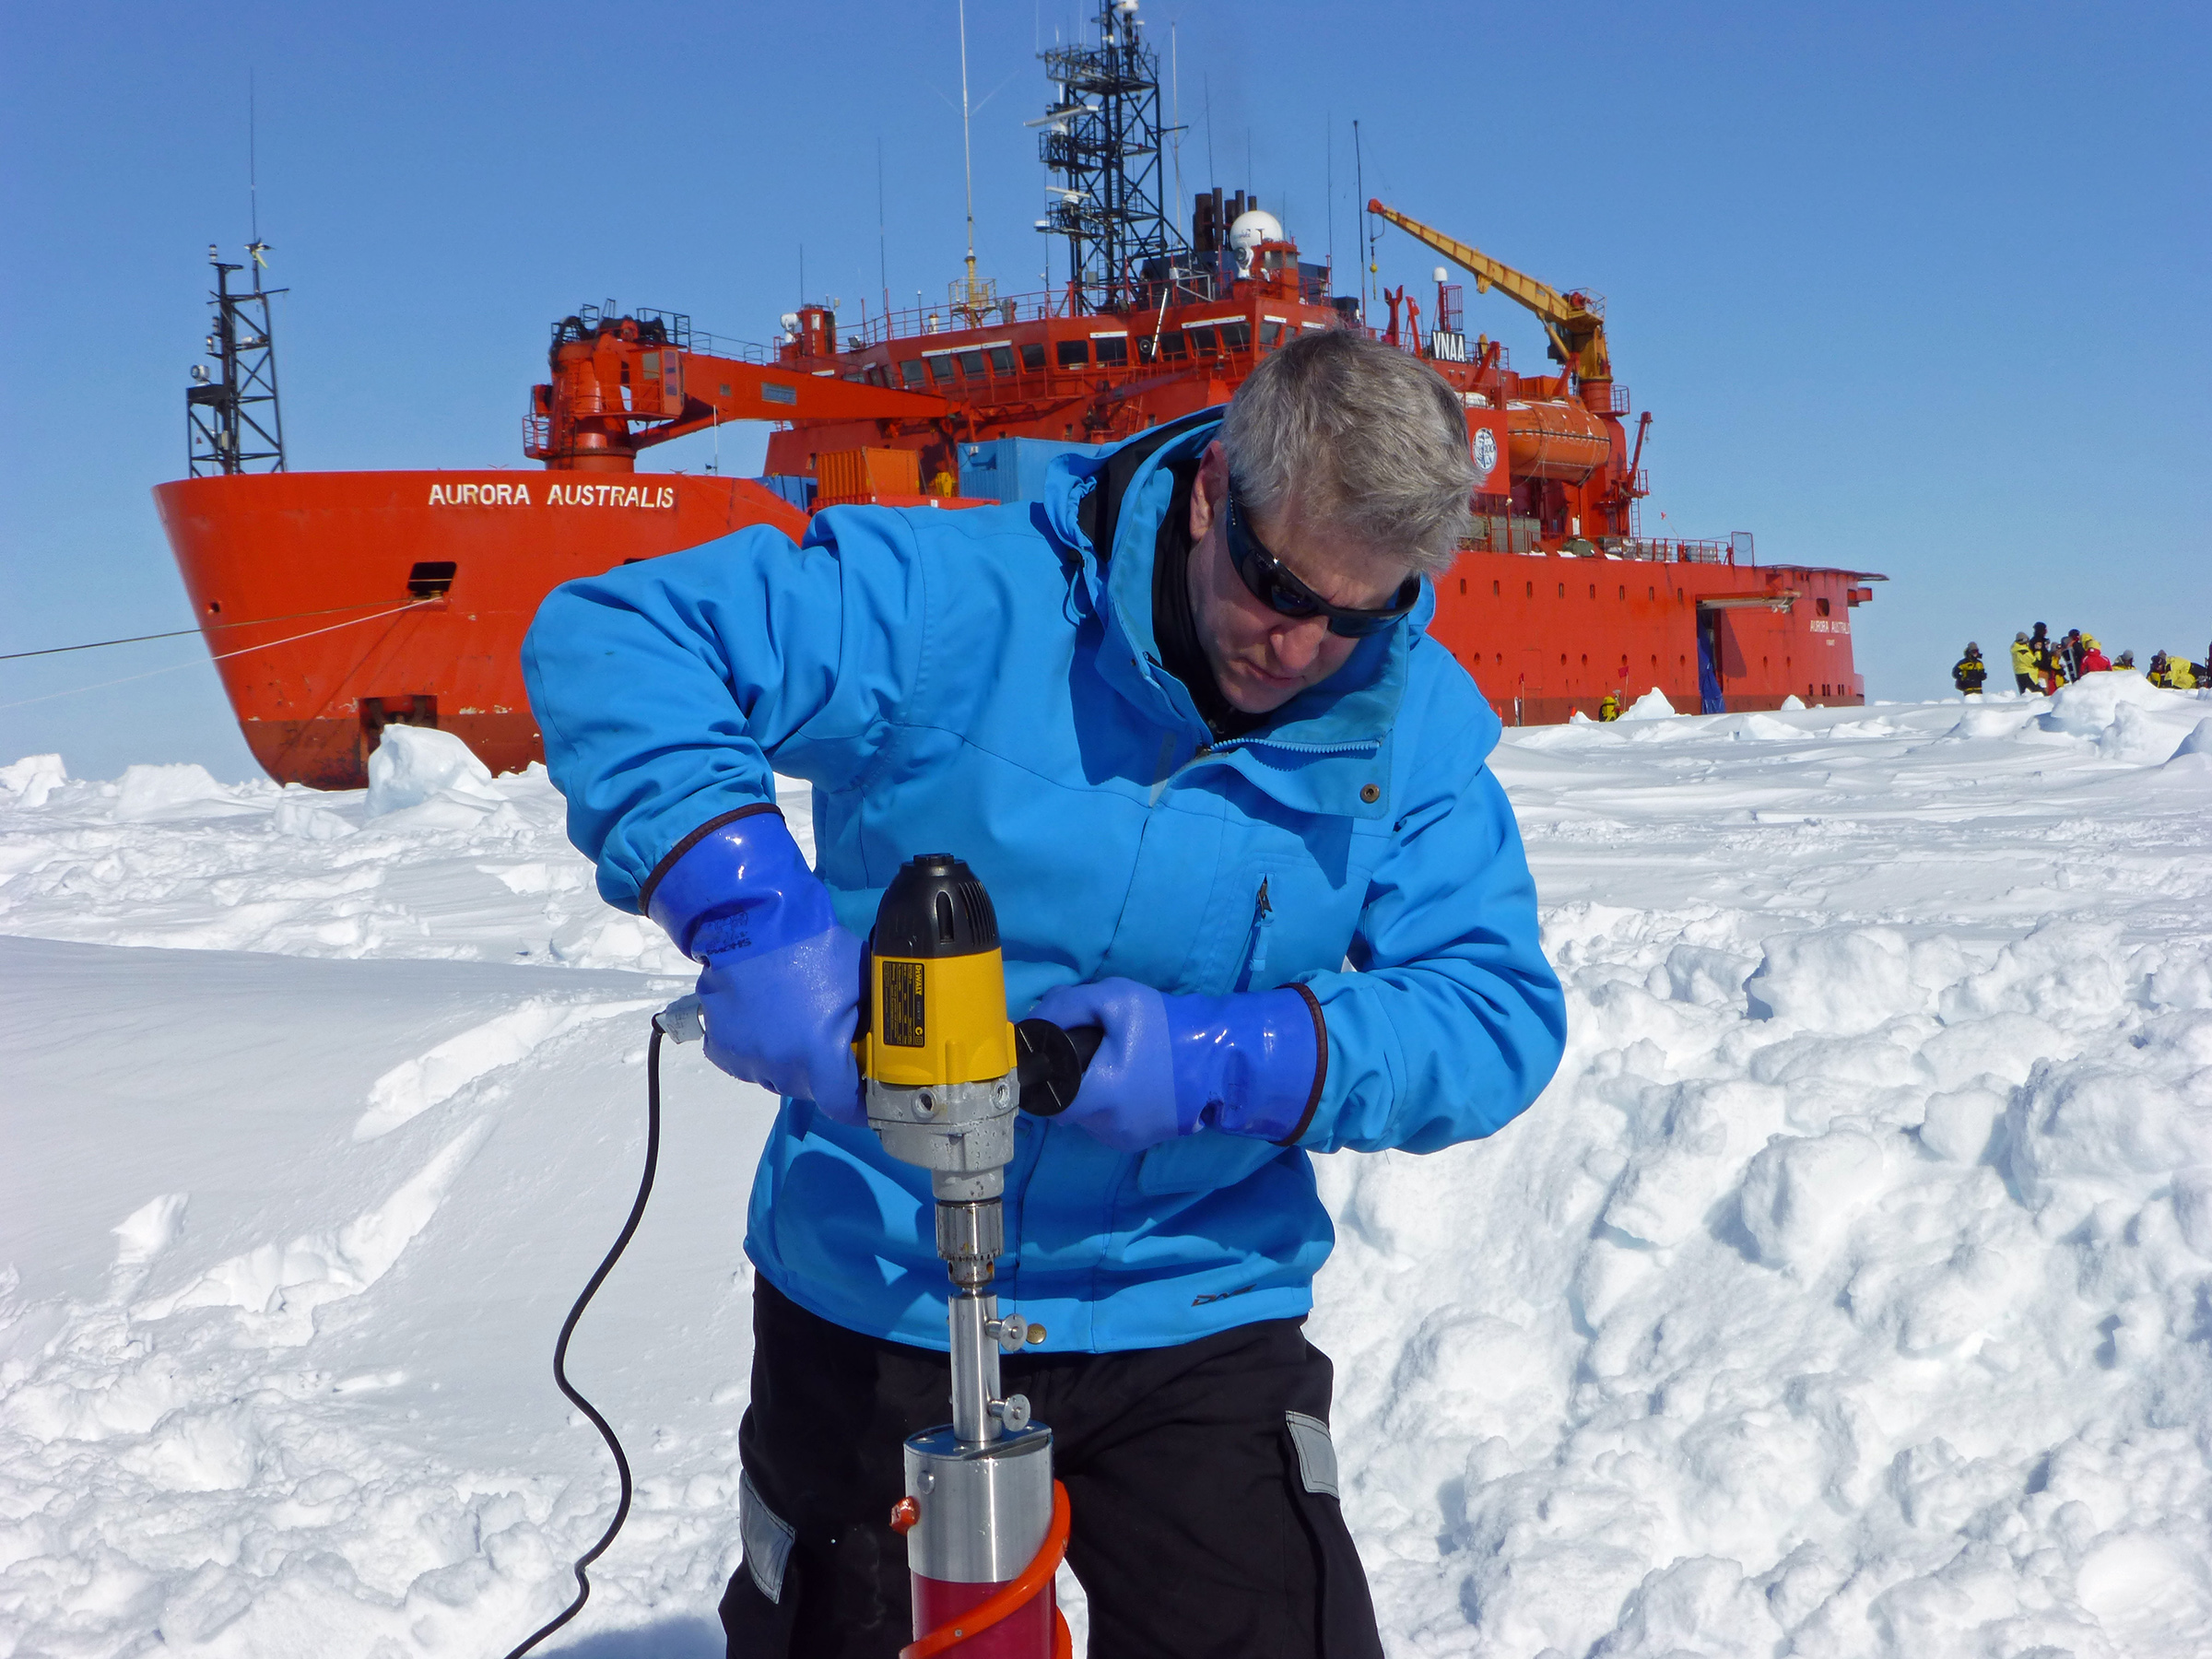 University of Utah math professor Ken Golden has been selected as a member of the Explorers Club, the exclusive New York City group with such famous past members as first man-on-the-moon Neil Armstrong, test pilot Chuck Yeager and Sir Edmund Hillary, one of the first two men to reach the summit of Mount Everest. Golden is shown here drilling ice core samples during a 2012 expedition to Antarctica aboard the Aurora Australis. He studies the mathematics of sea ice and how that relates to climate change. He has made 17 trips to polar regions since 1980.